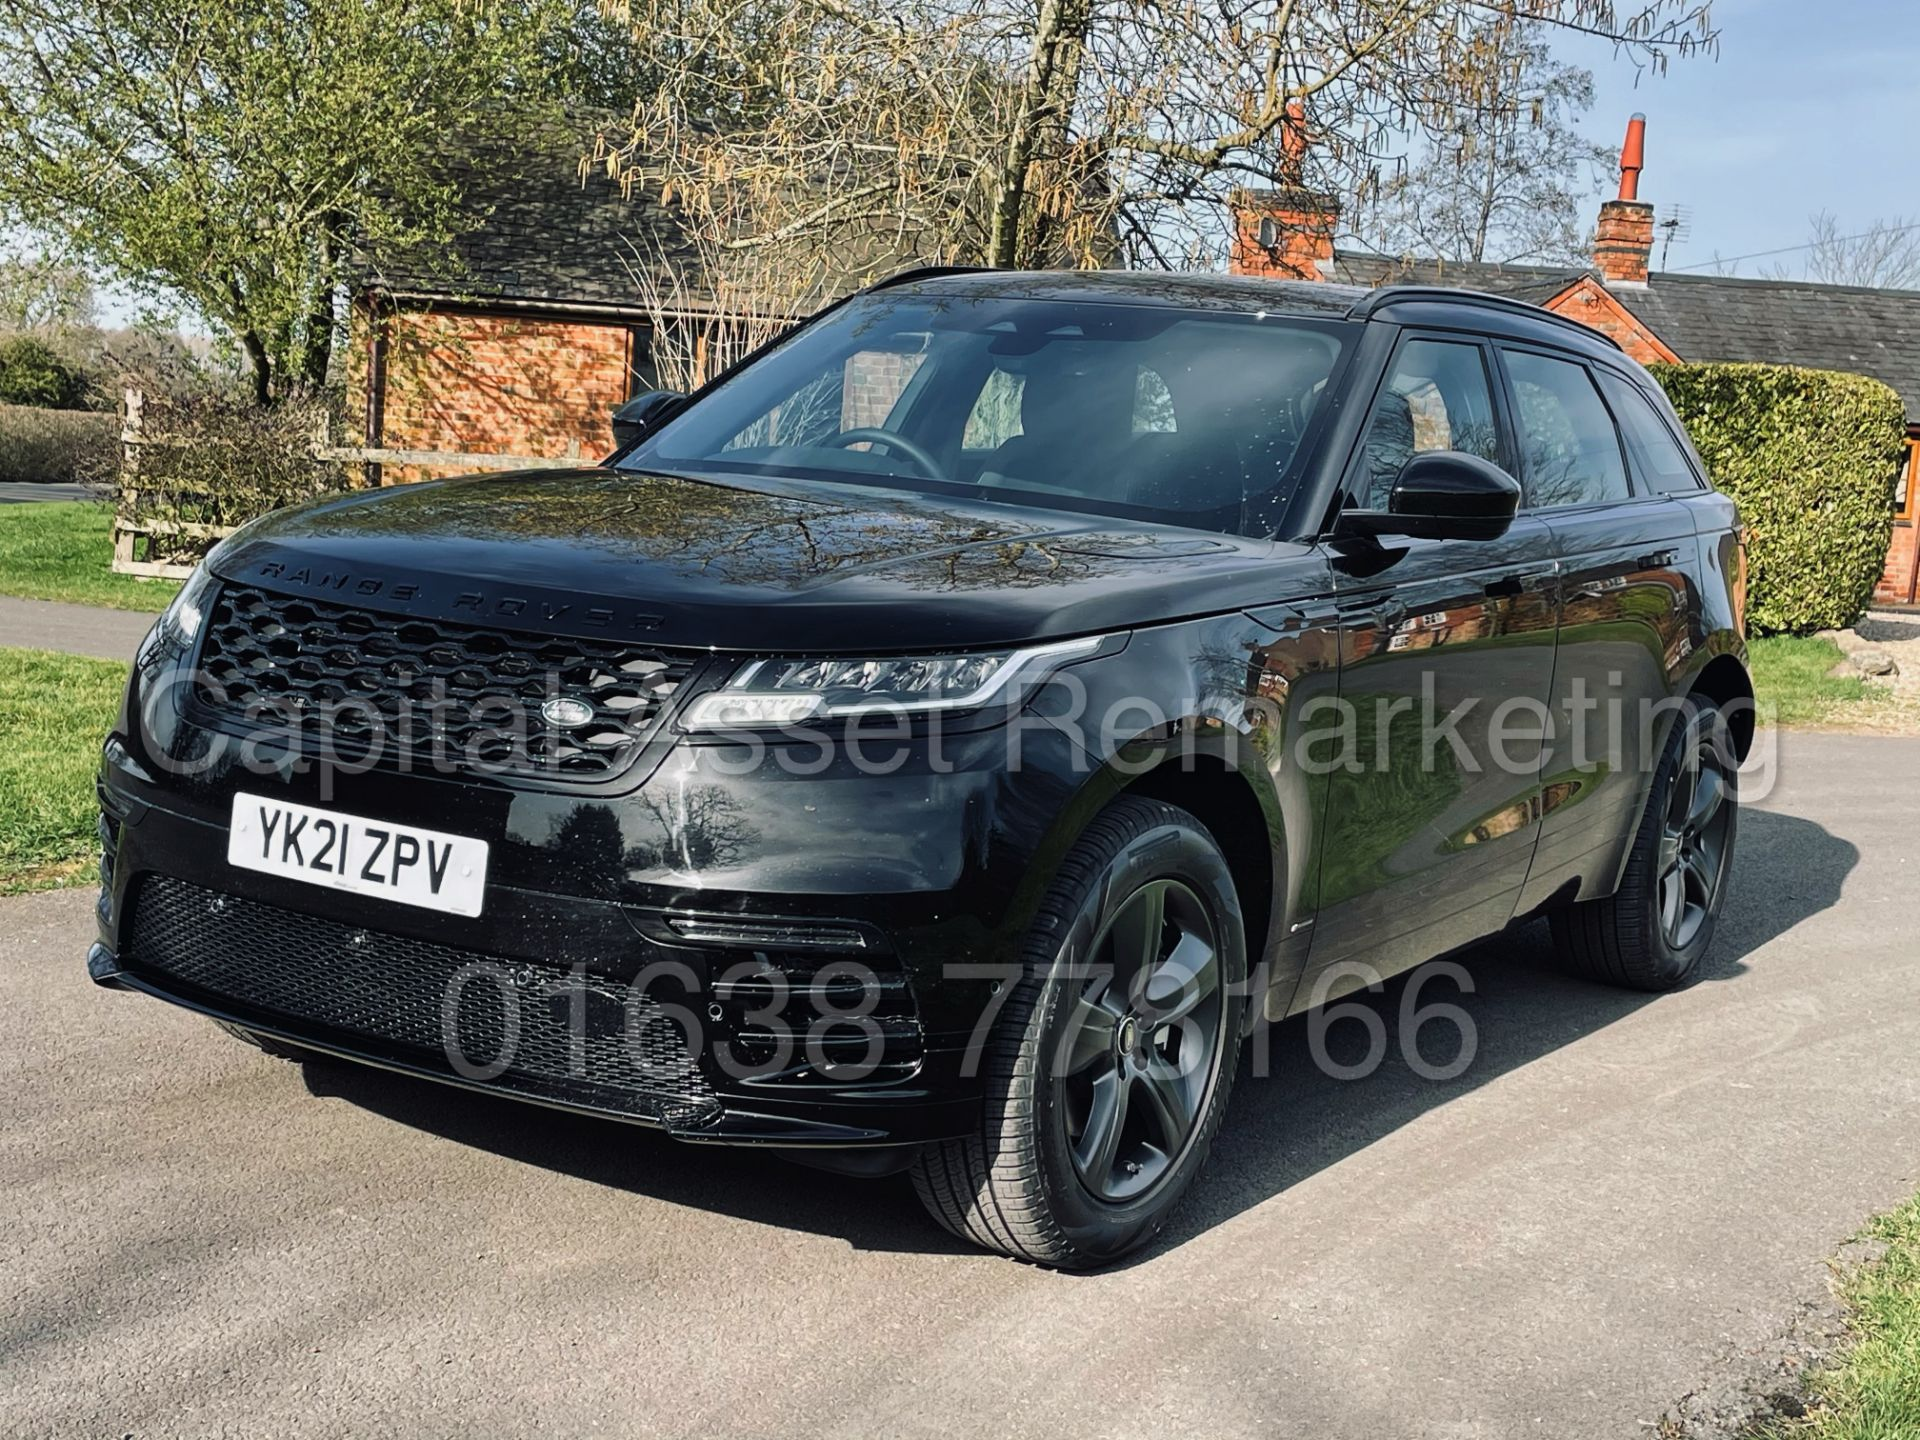 (On Sale) RANGE ROVER VELAR *R-DYNAMIC* SUV (2021) *8 SPEED AUTO - LEATHER* (DELIVERY MILES) - Image 5 of 50